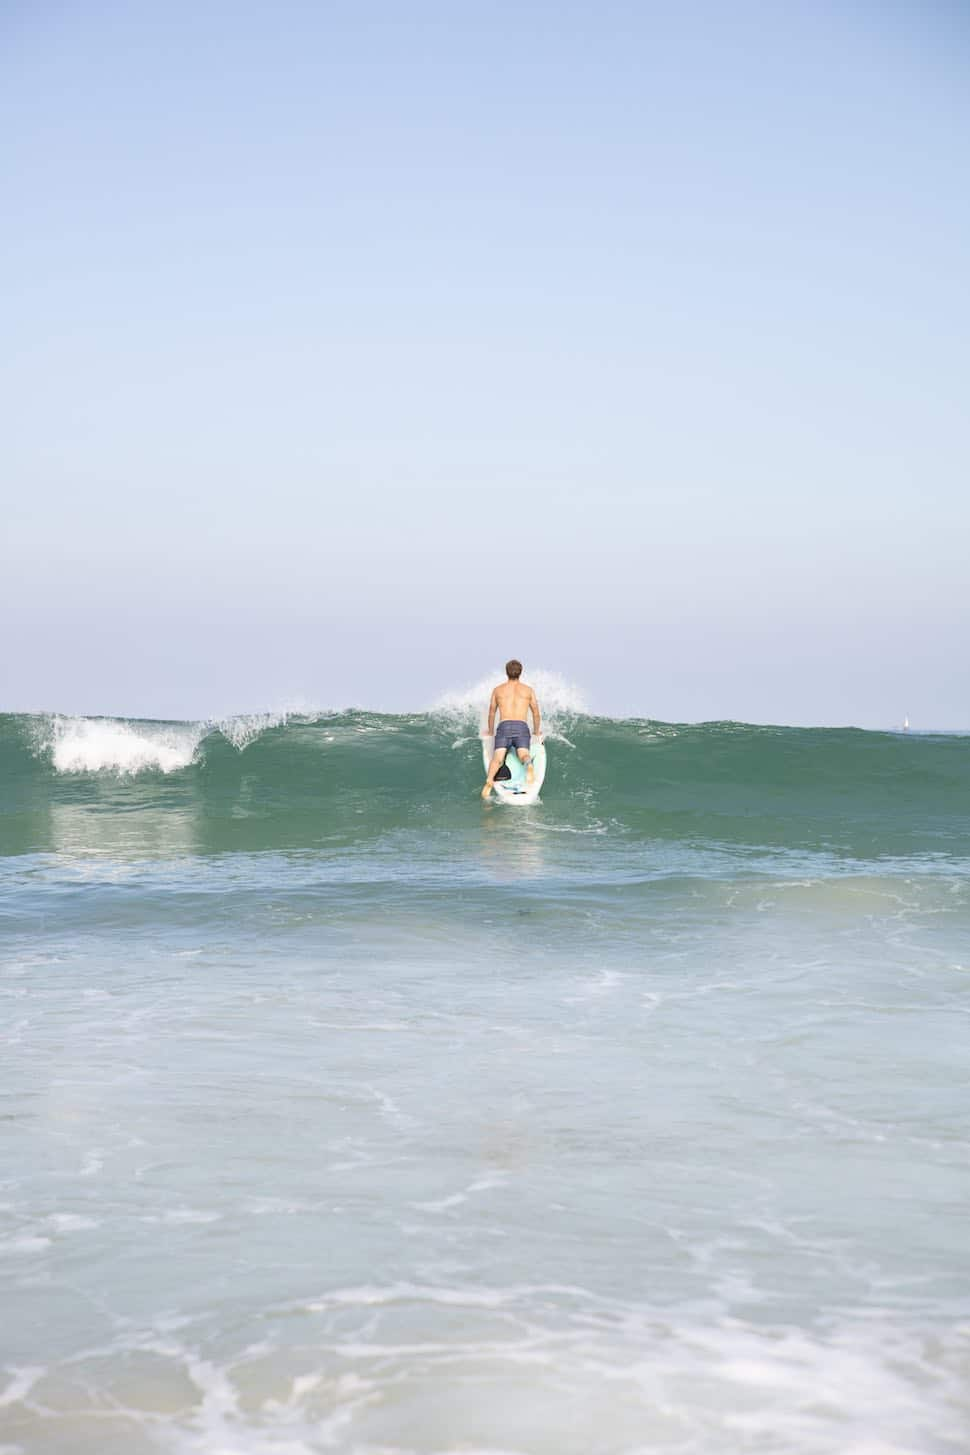 Thurso-Surf-Blog-SUP-Surfboard-Exercise-3-Drills-to-Help-Improve-Your-Surfing-man-paddles-out-over-breaking-wave-on-Thurso-Surf-Waterwalker-All-around-SUP